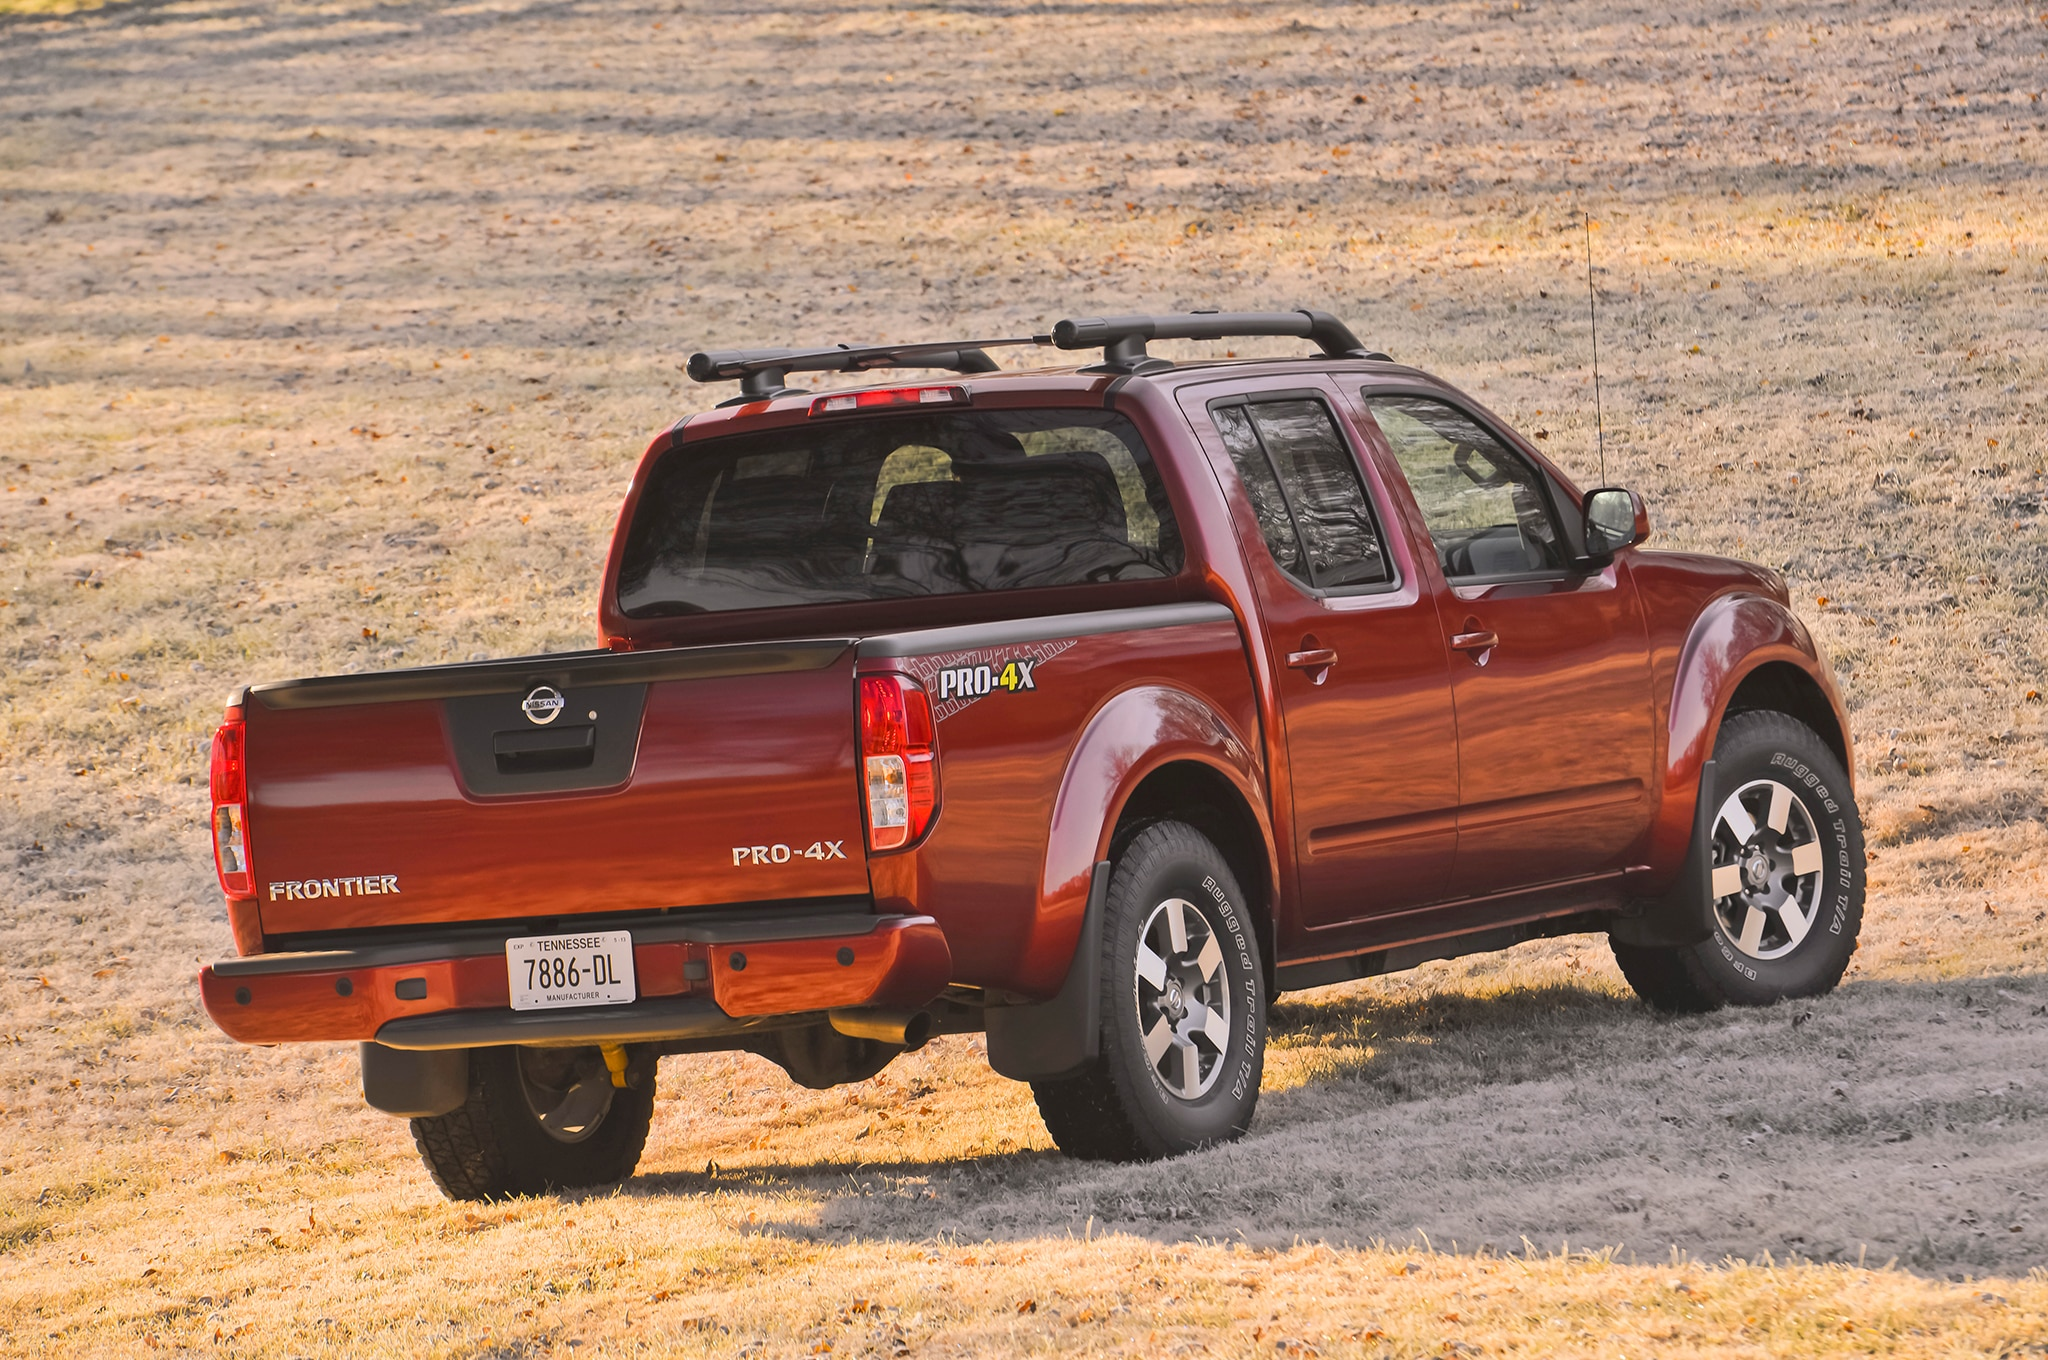 2015 Nissan Frontier, Xterra to Cost $18,850 and $24,520